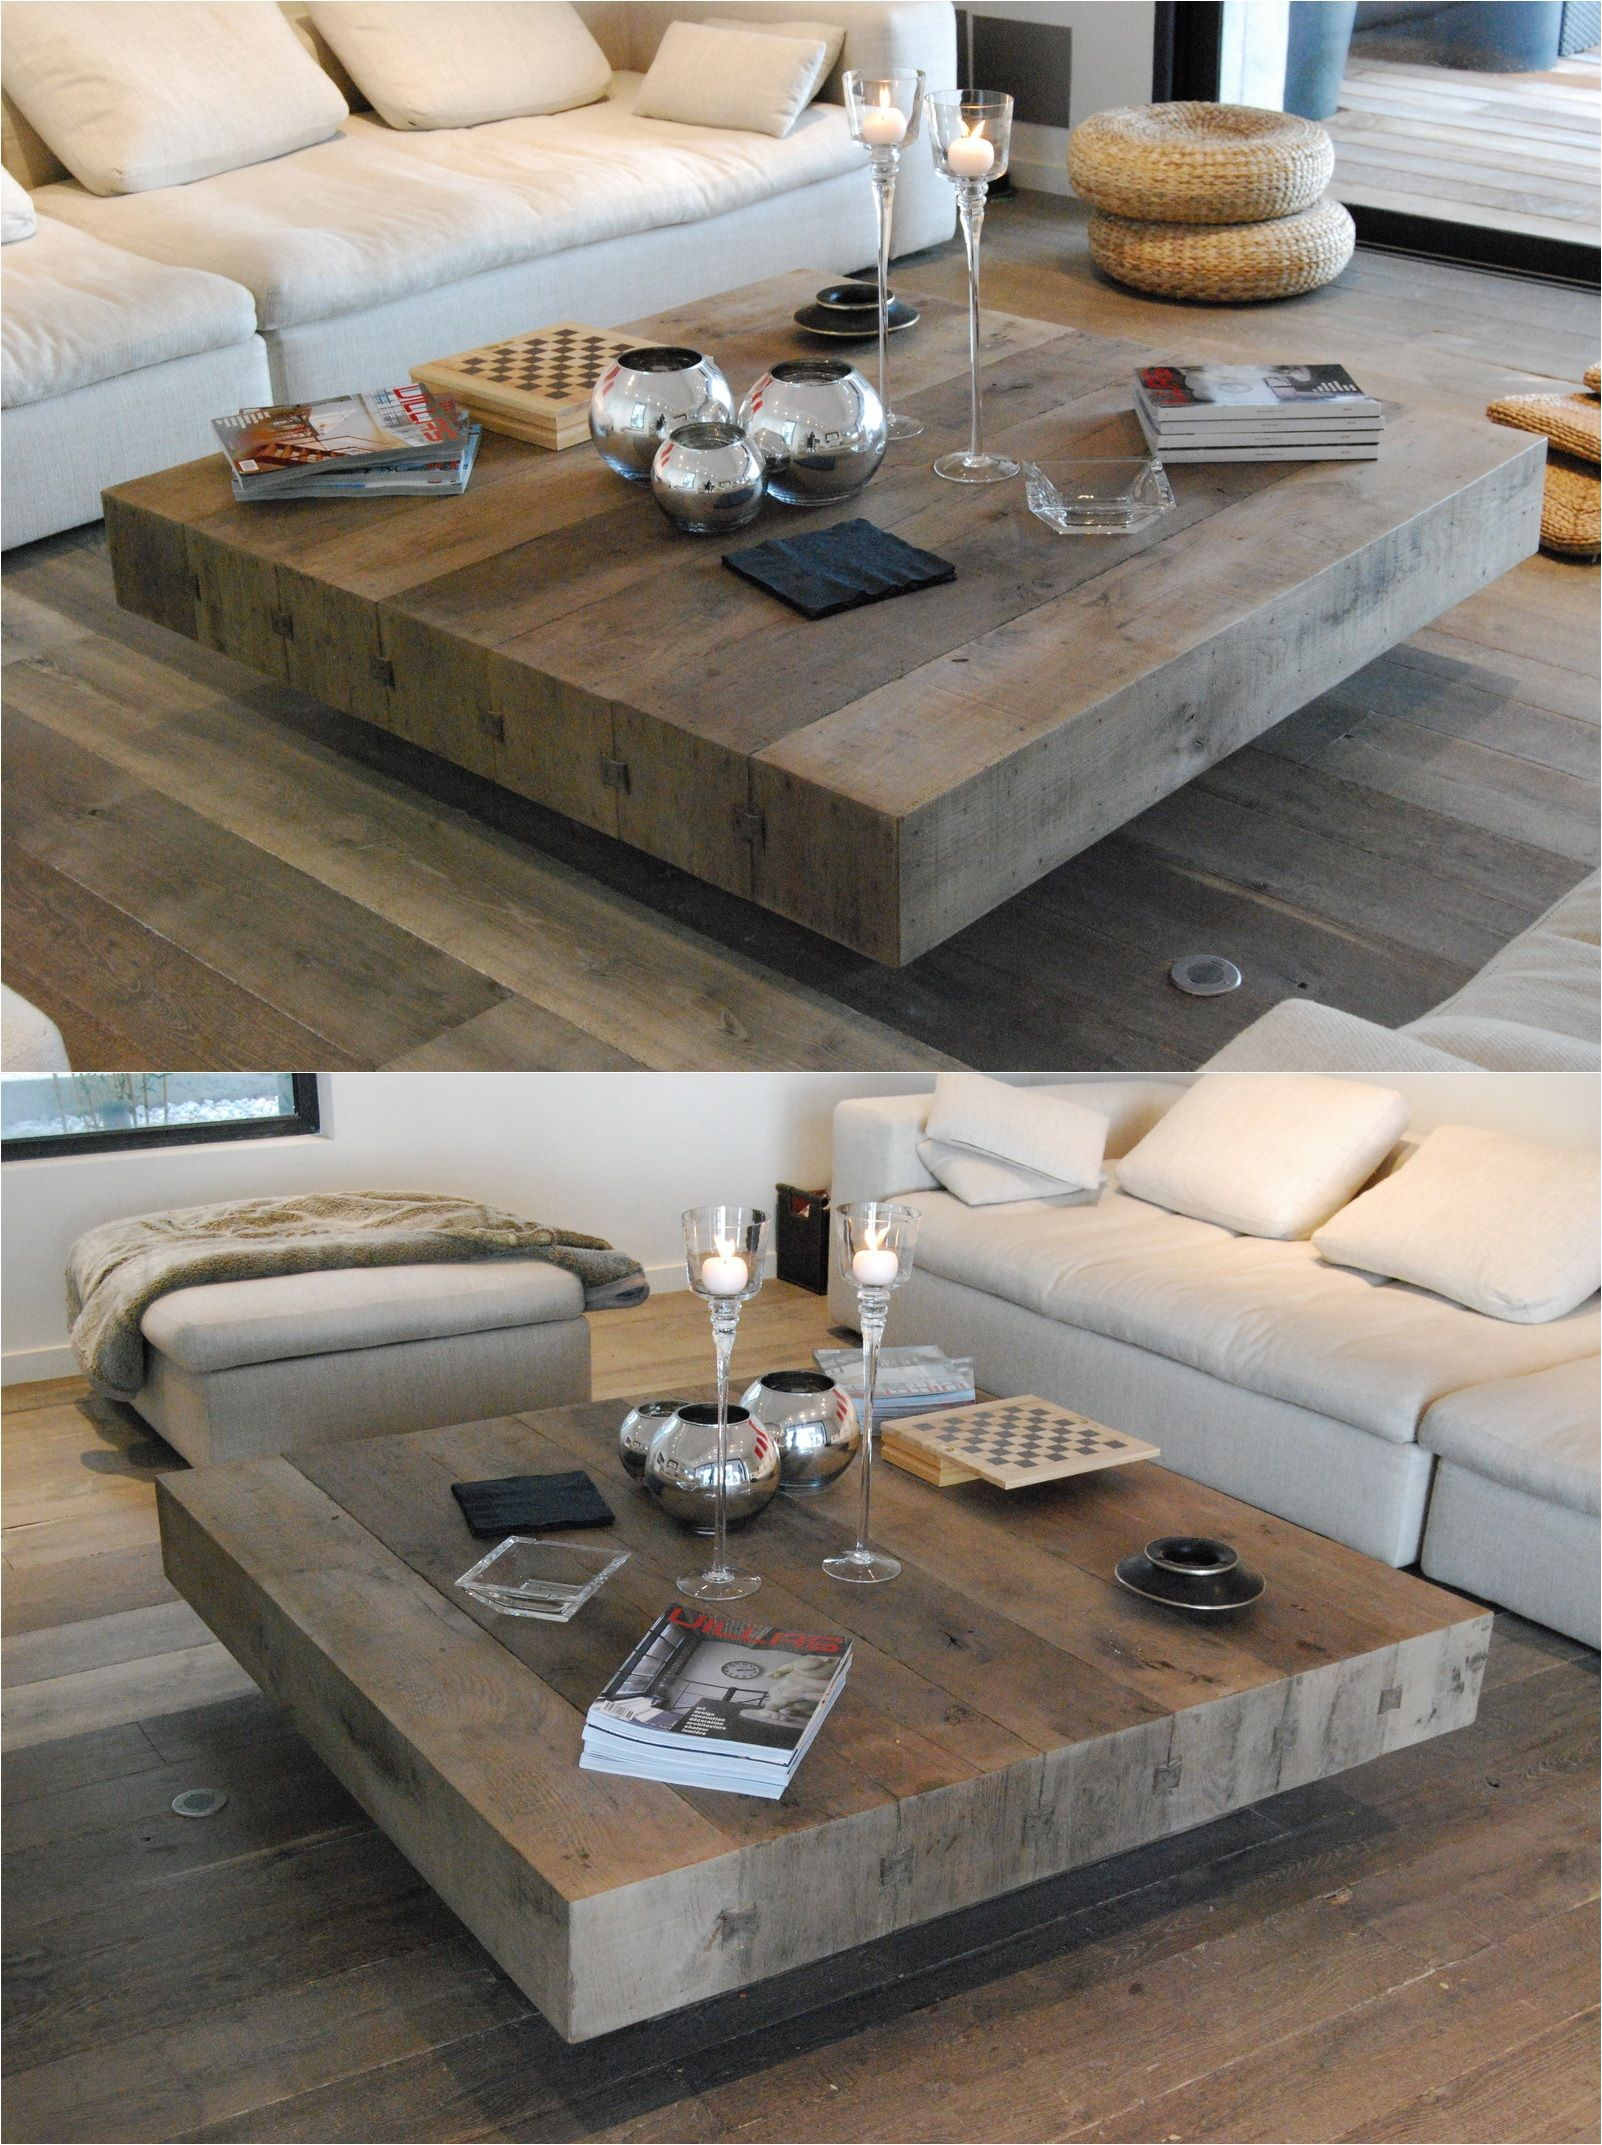 Bonheur Wooden Handmade Square Coffee Table By Didier Cabuy Diy